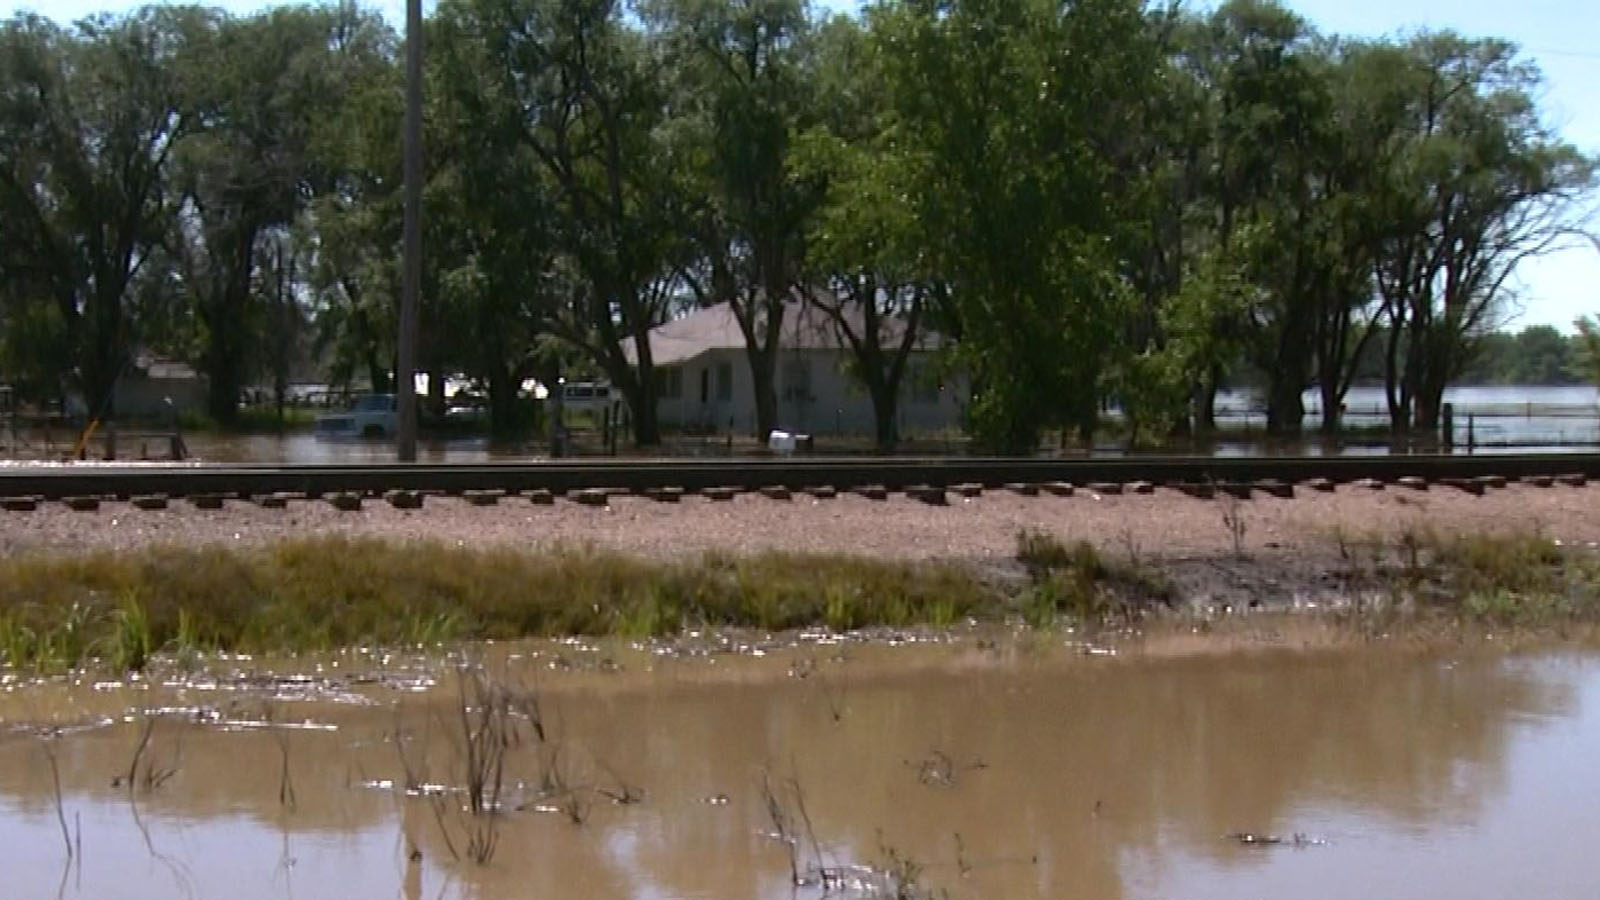 Flooding in Crook on Sept. 17, 2013. (credit: CBS)